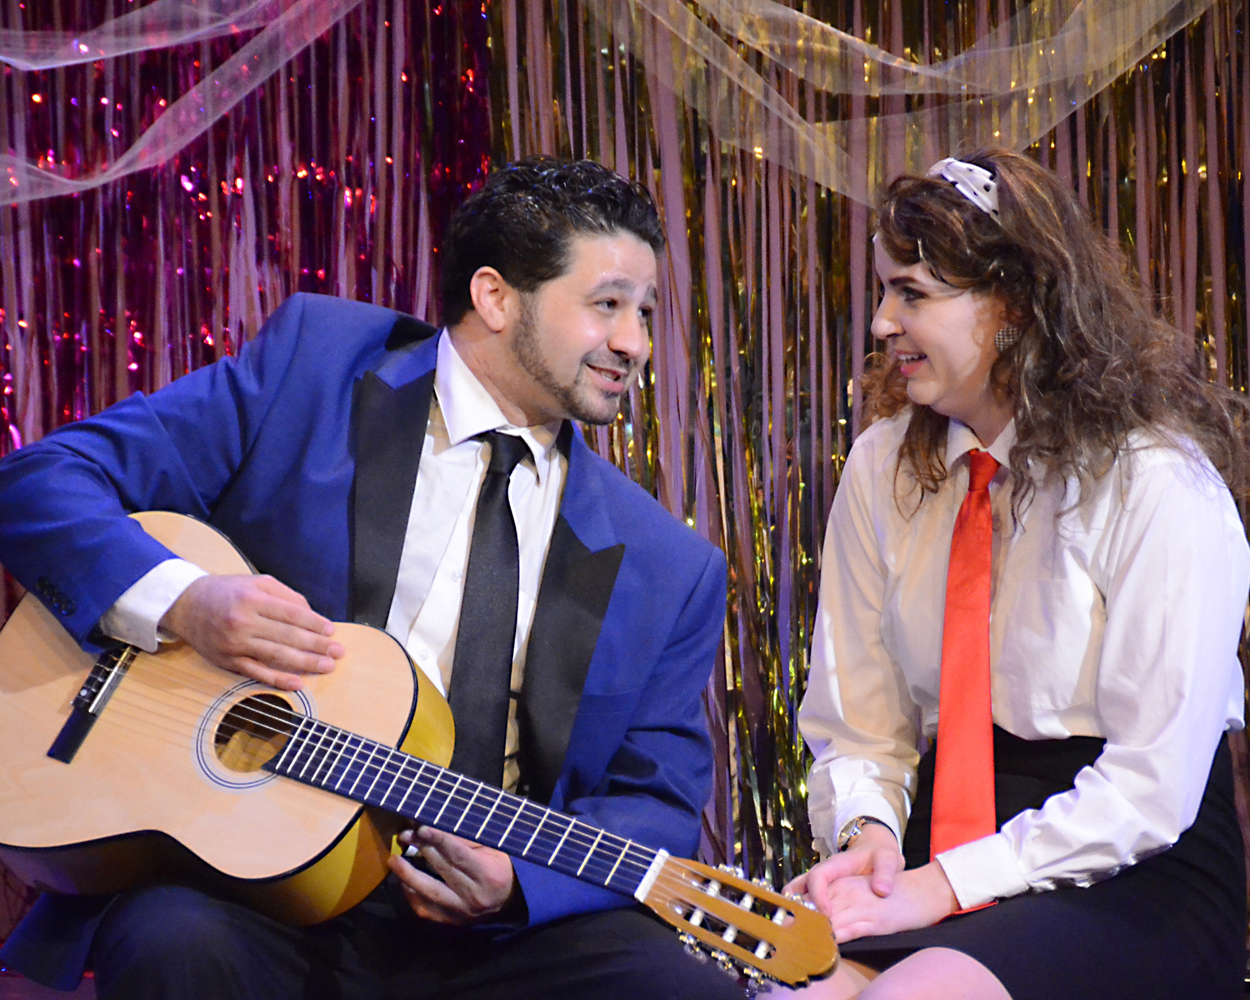 BWW Review: THE WEDDING SINGER at Palm Canyon Theatre